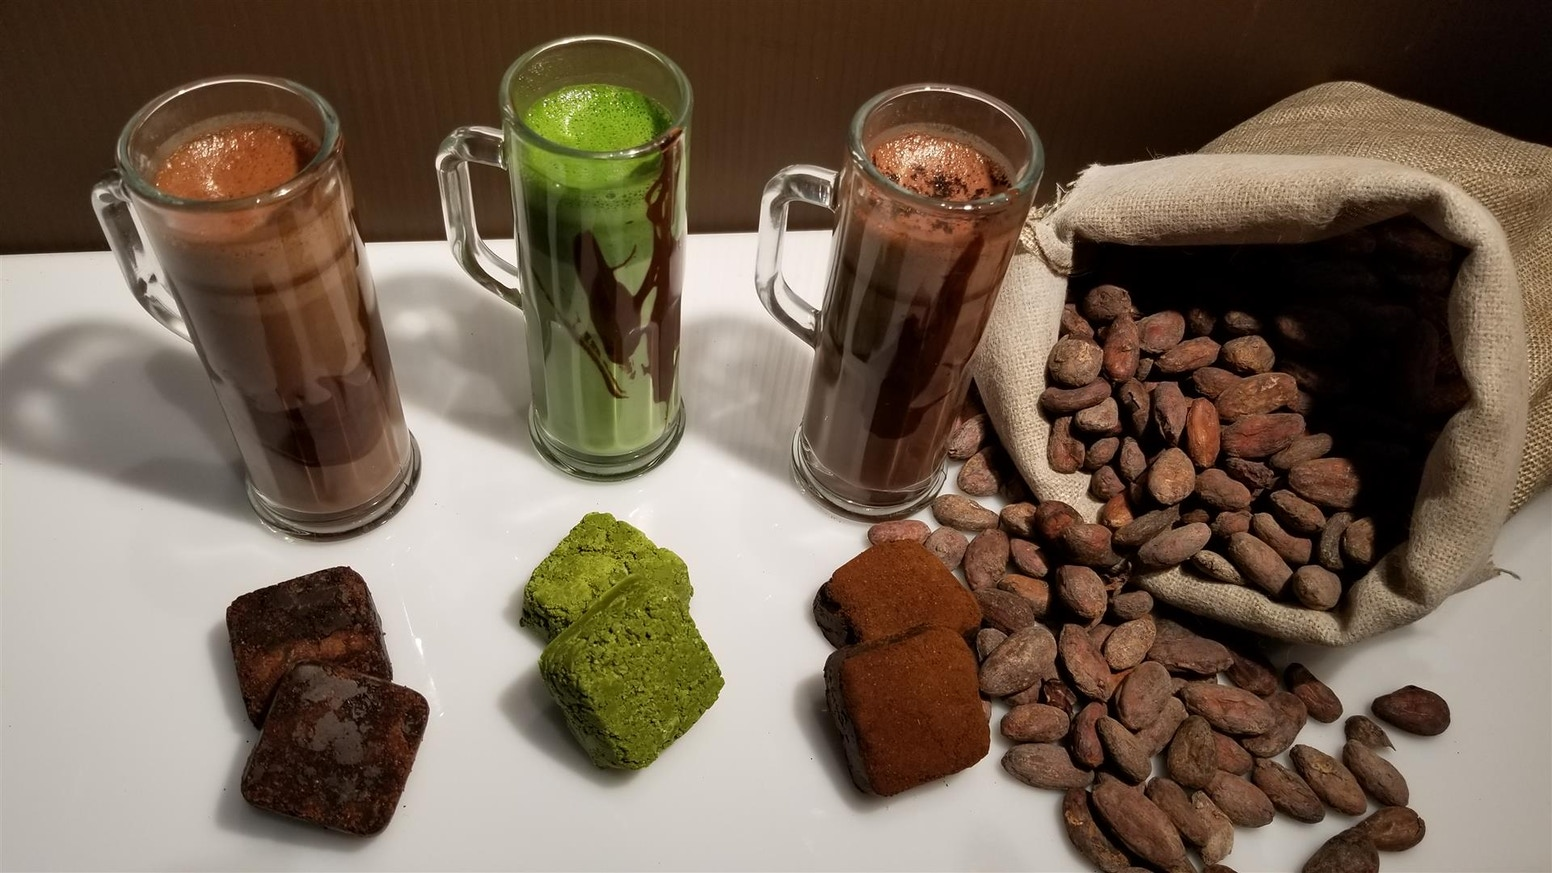 A whole food, rather than candy; Hot Chocolate Cubes are made with organic single origin cacao and raw, unrefined cane sugar.